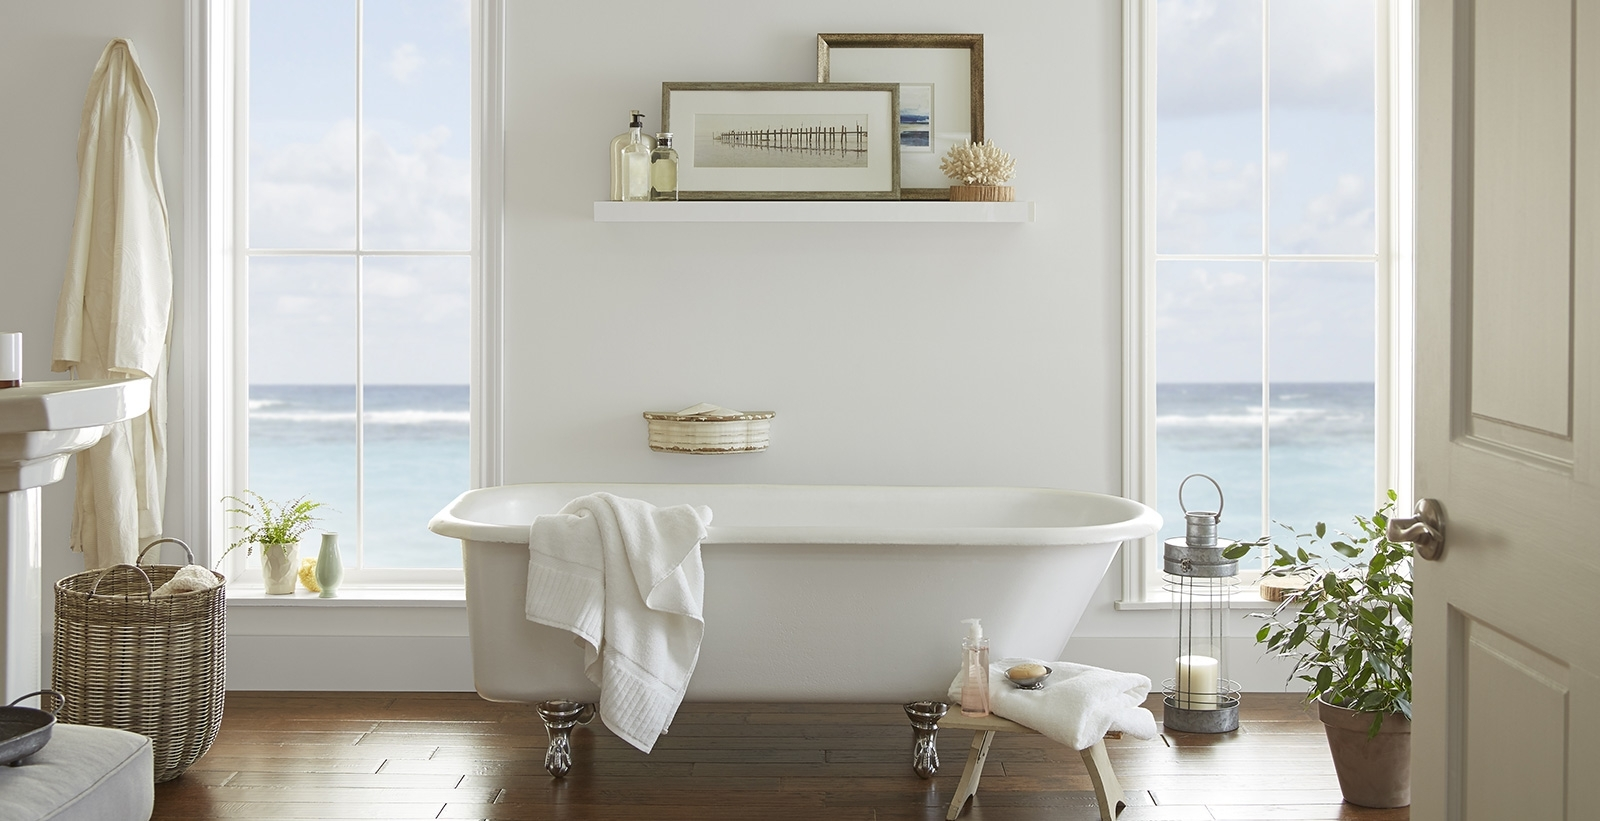 Casual Bathroom Ideas And Inspirational Paint Colors | Behr Bathroom Paint Color Behr